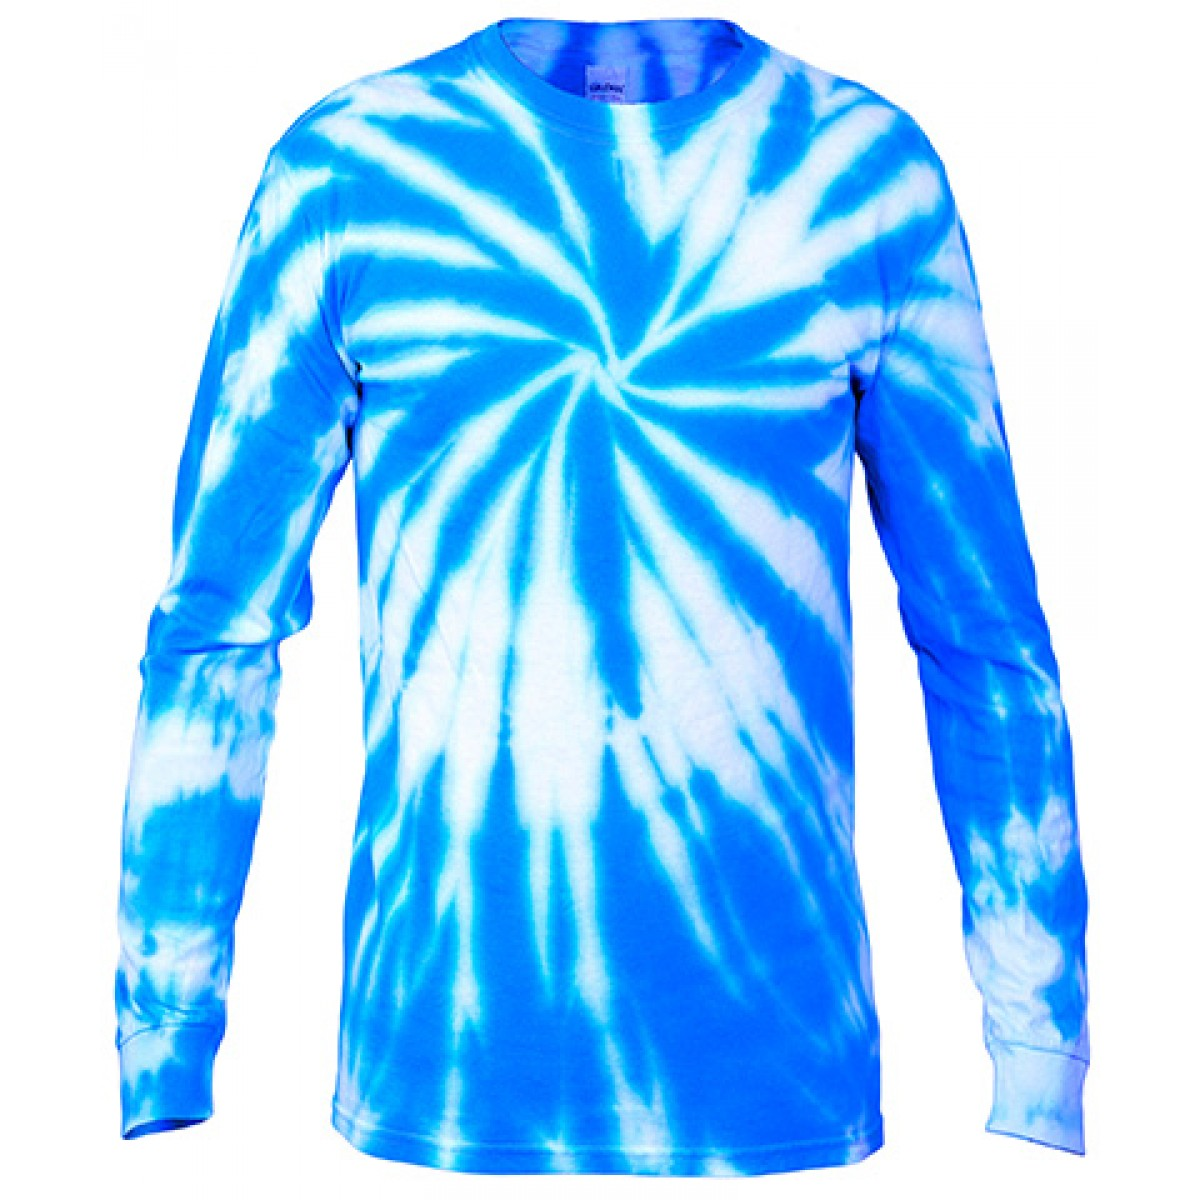 Multi Color Tie-Dye Long Sleeve Shirt -Blue-2XL